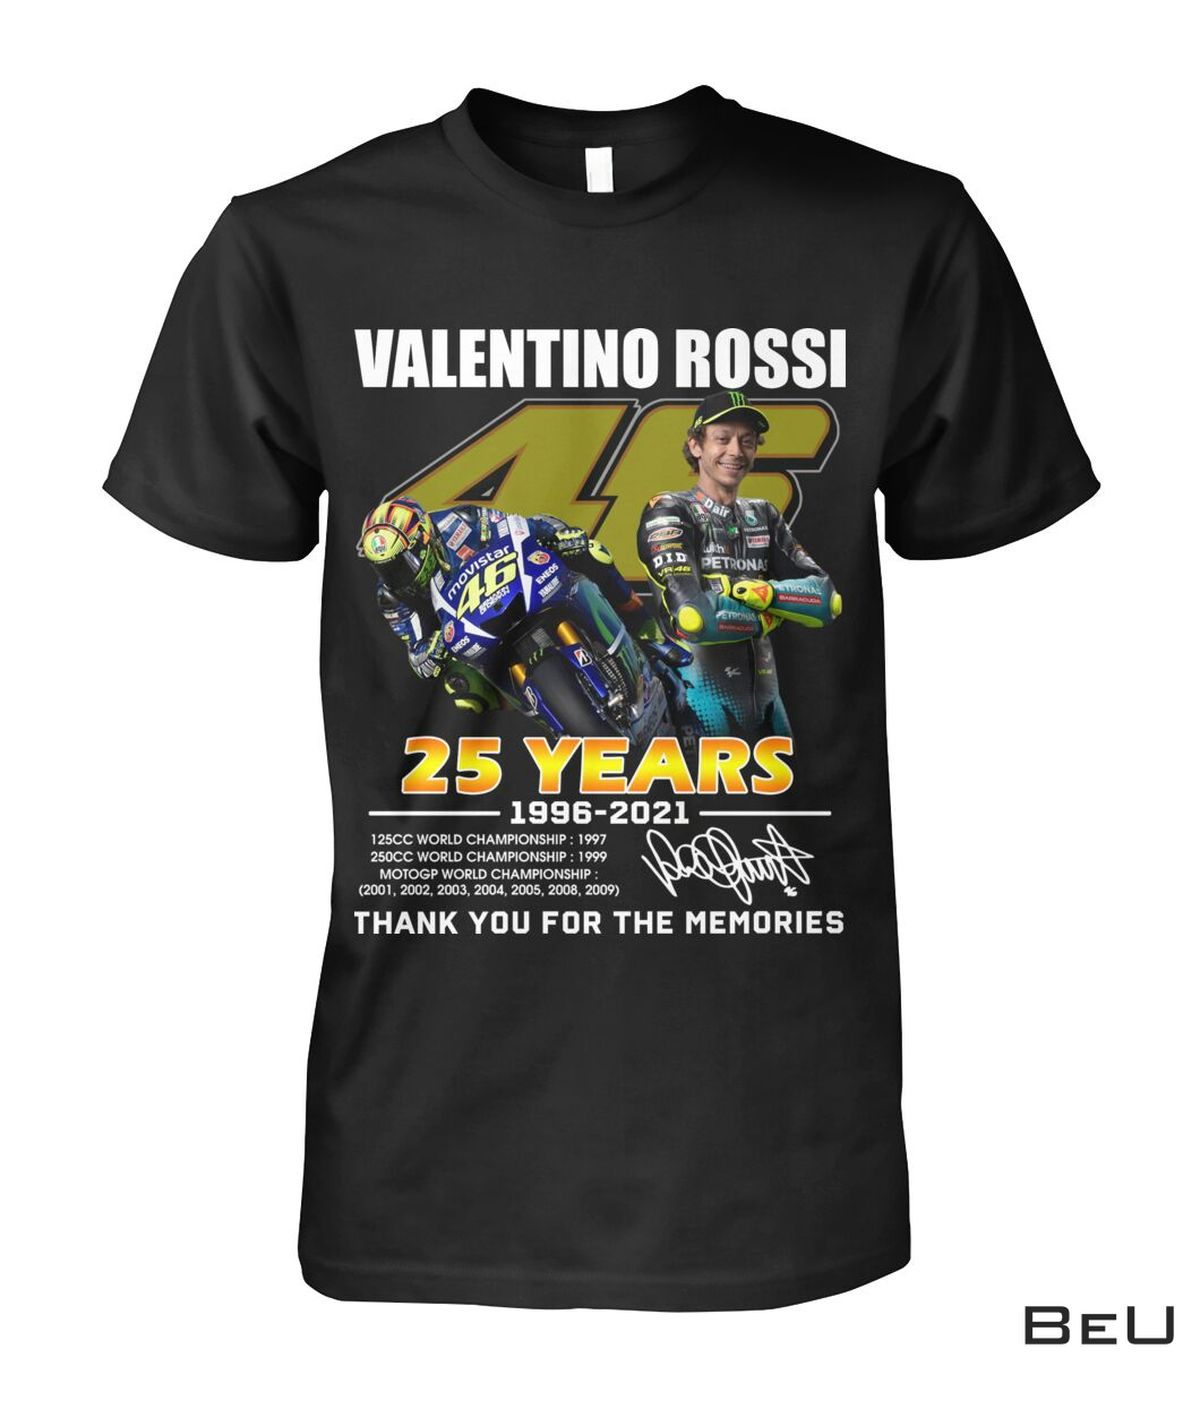 Valentino Rossi 25 Years Thank You For The Memories Shirt, hoodie, tank top